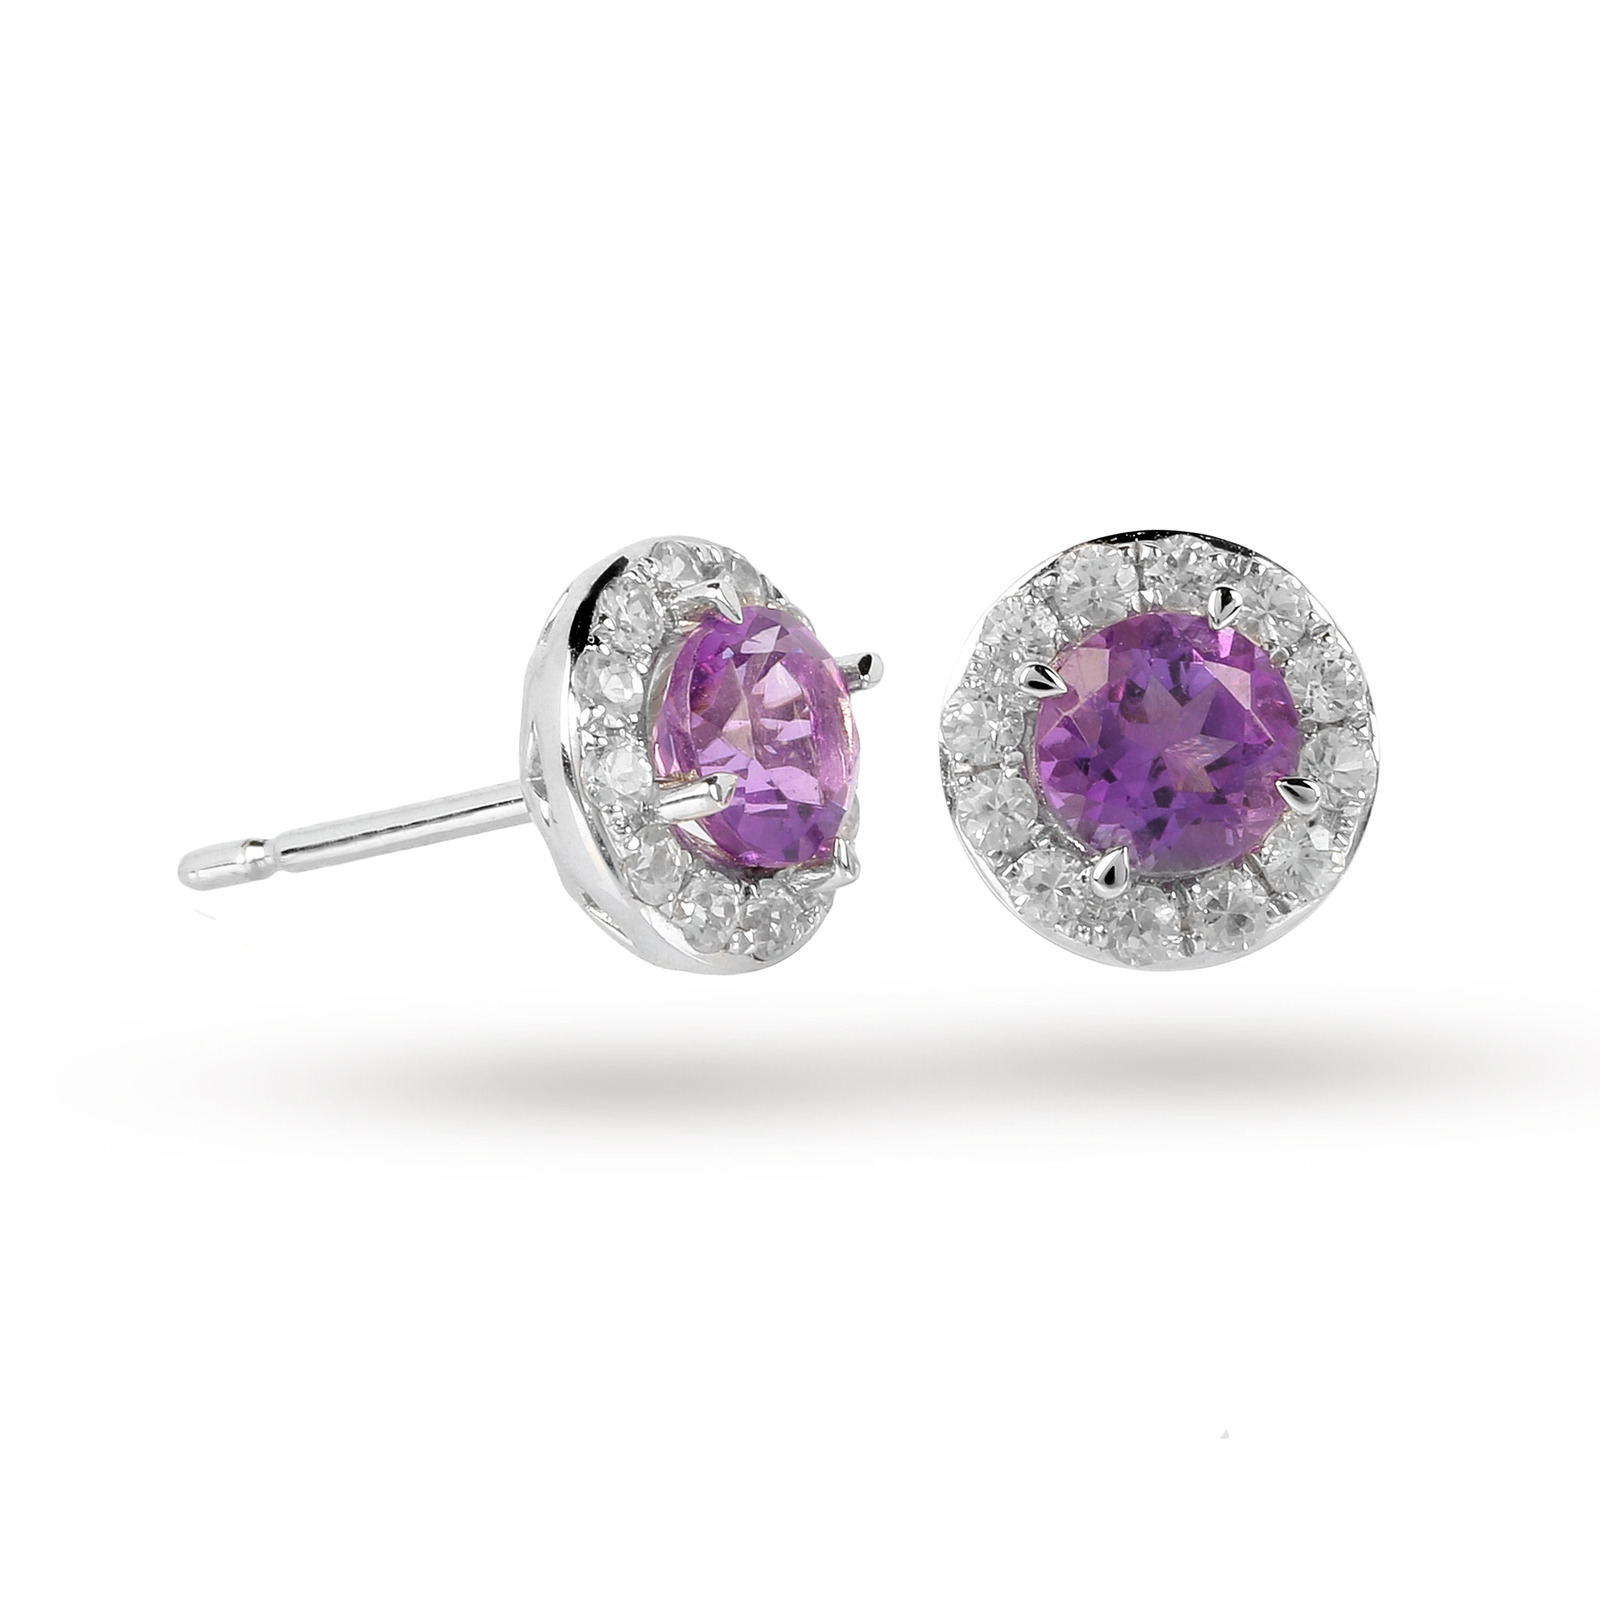 9ct White Gold Amethyst And Diamond Halo Stud Earrings